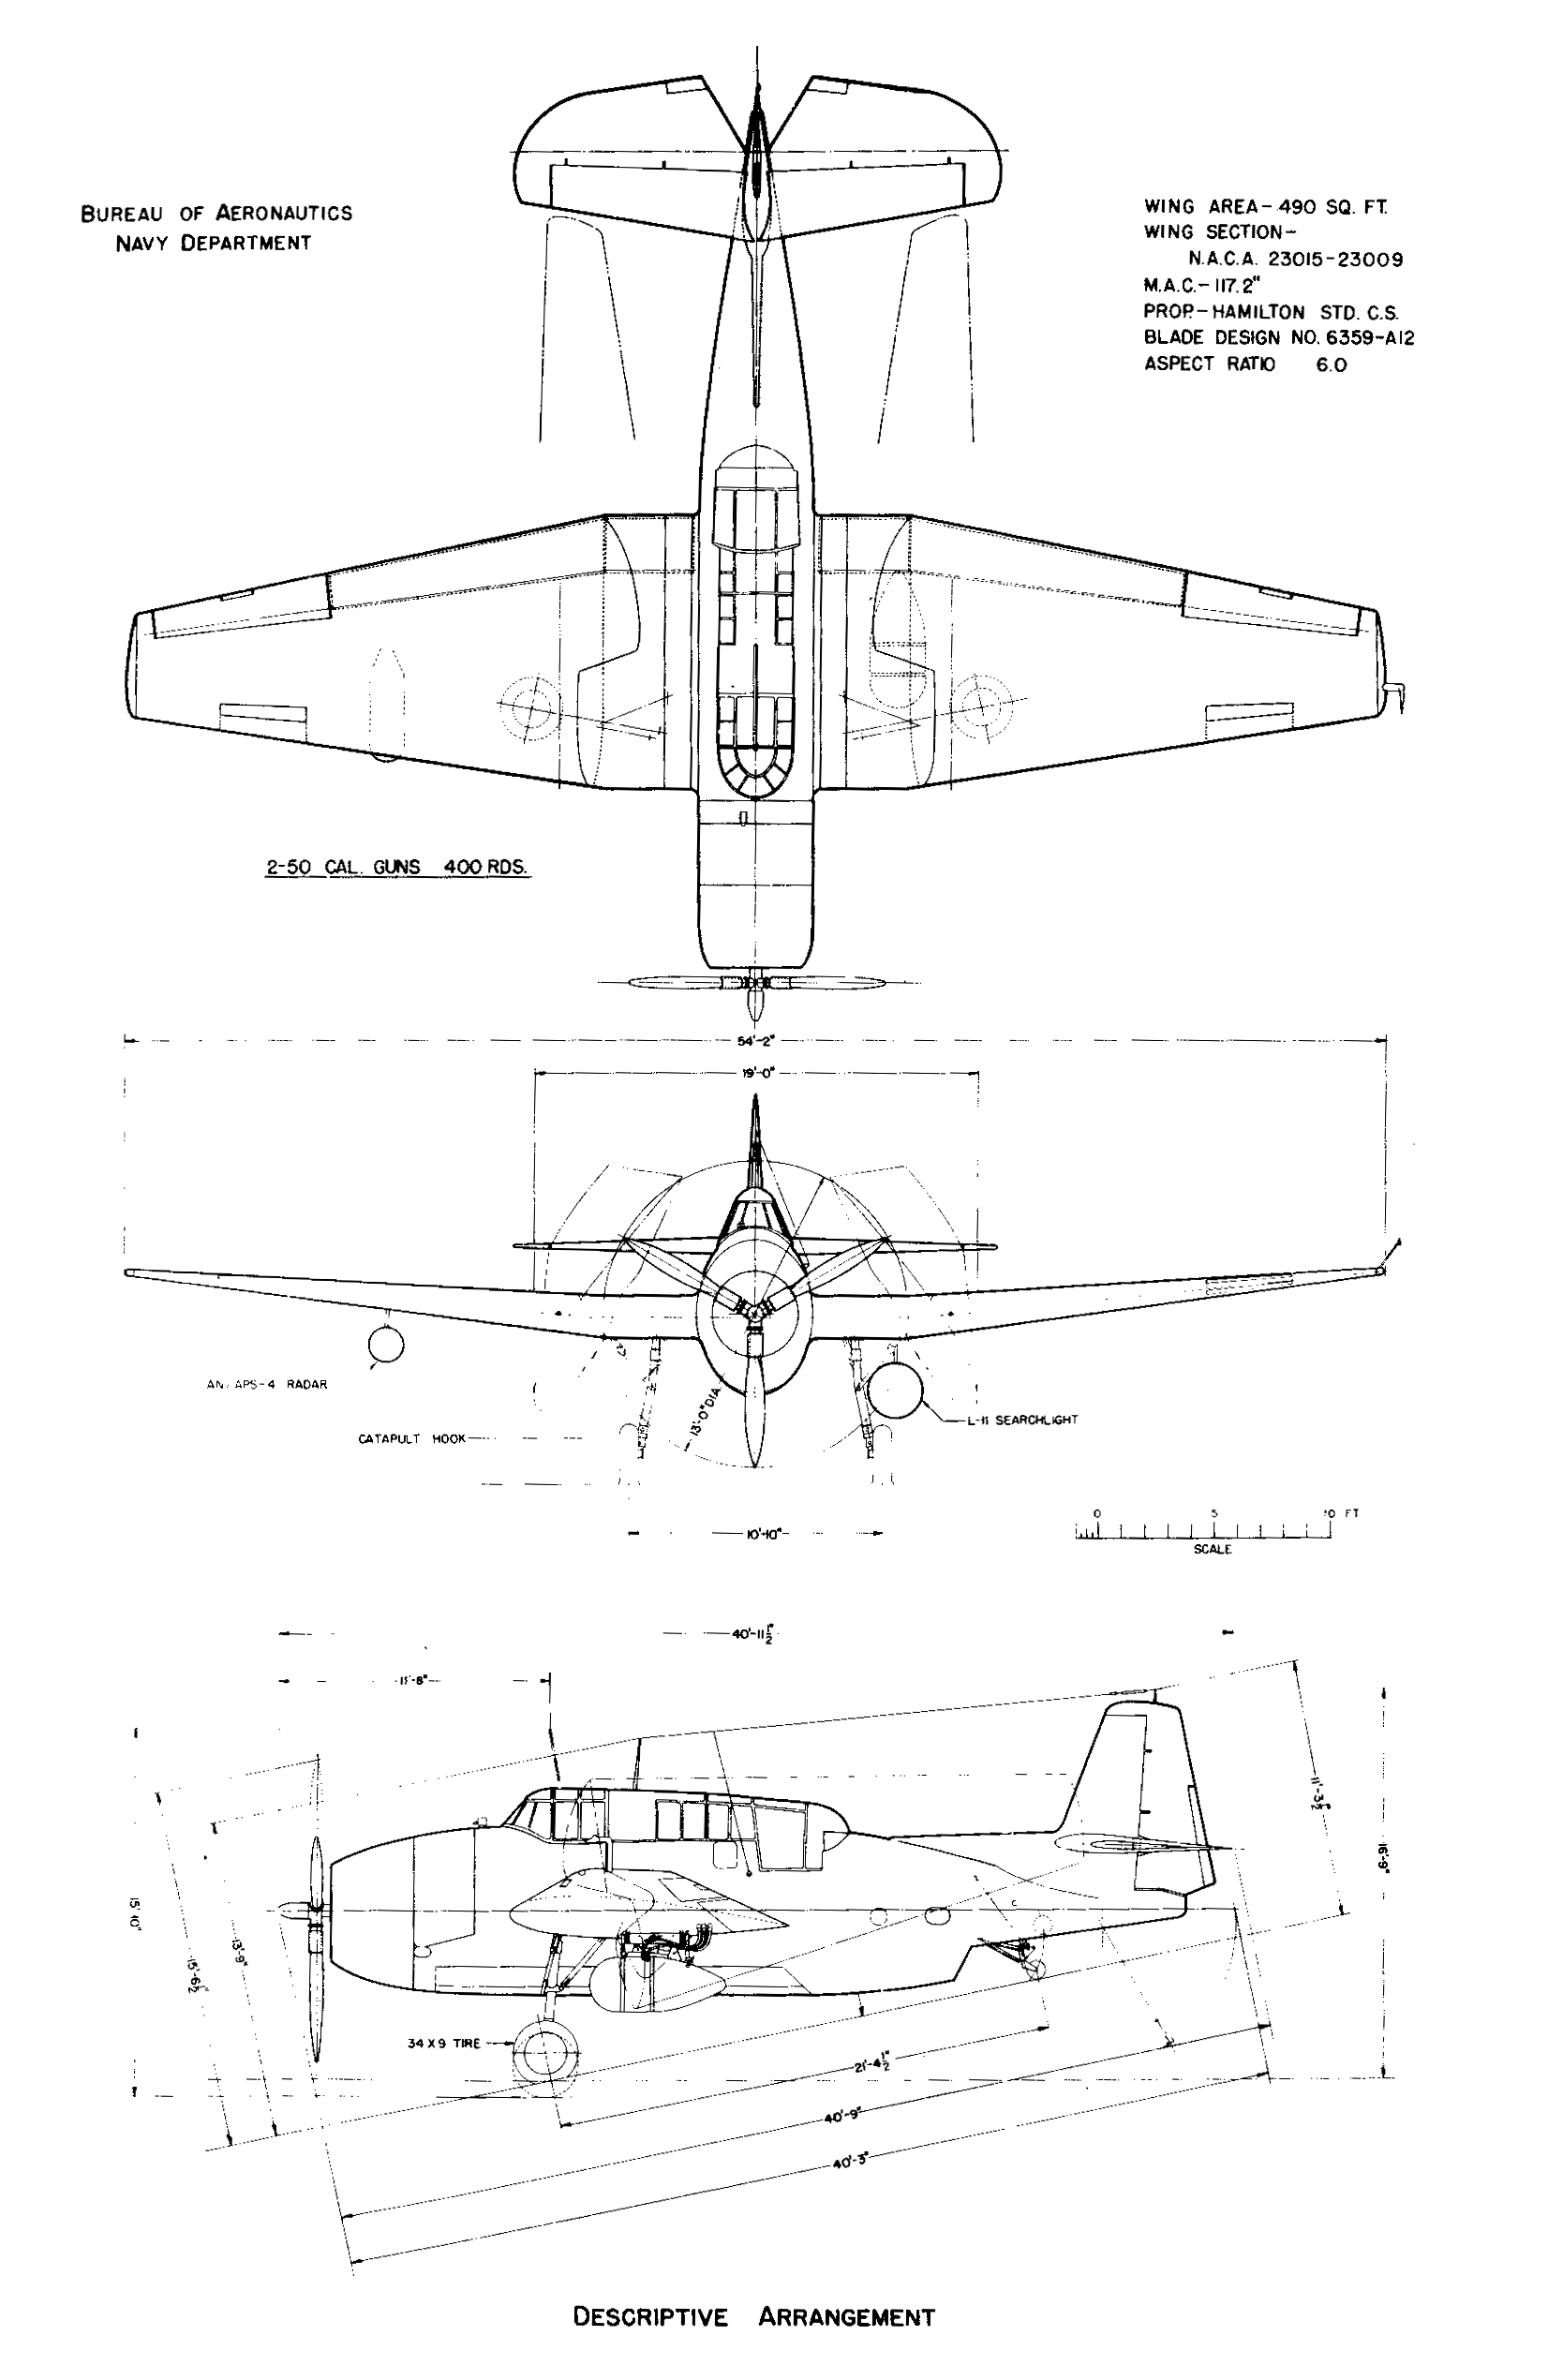 TBF Avenger blueprint